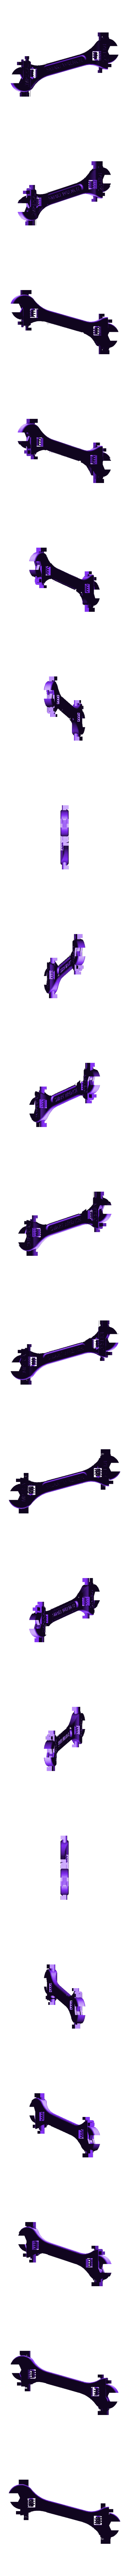 SmartWrench-Global-Lefty.stl Download free STL file Fully assembled 3D printable SMART wrench • 3D printer design, bLiTzJoN